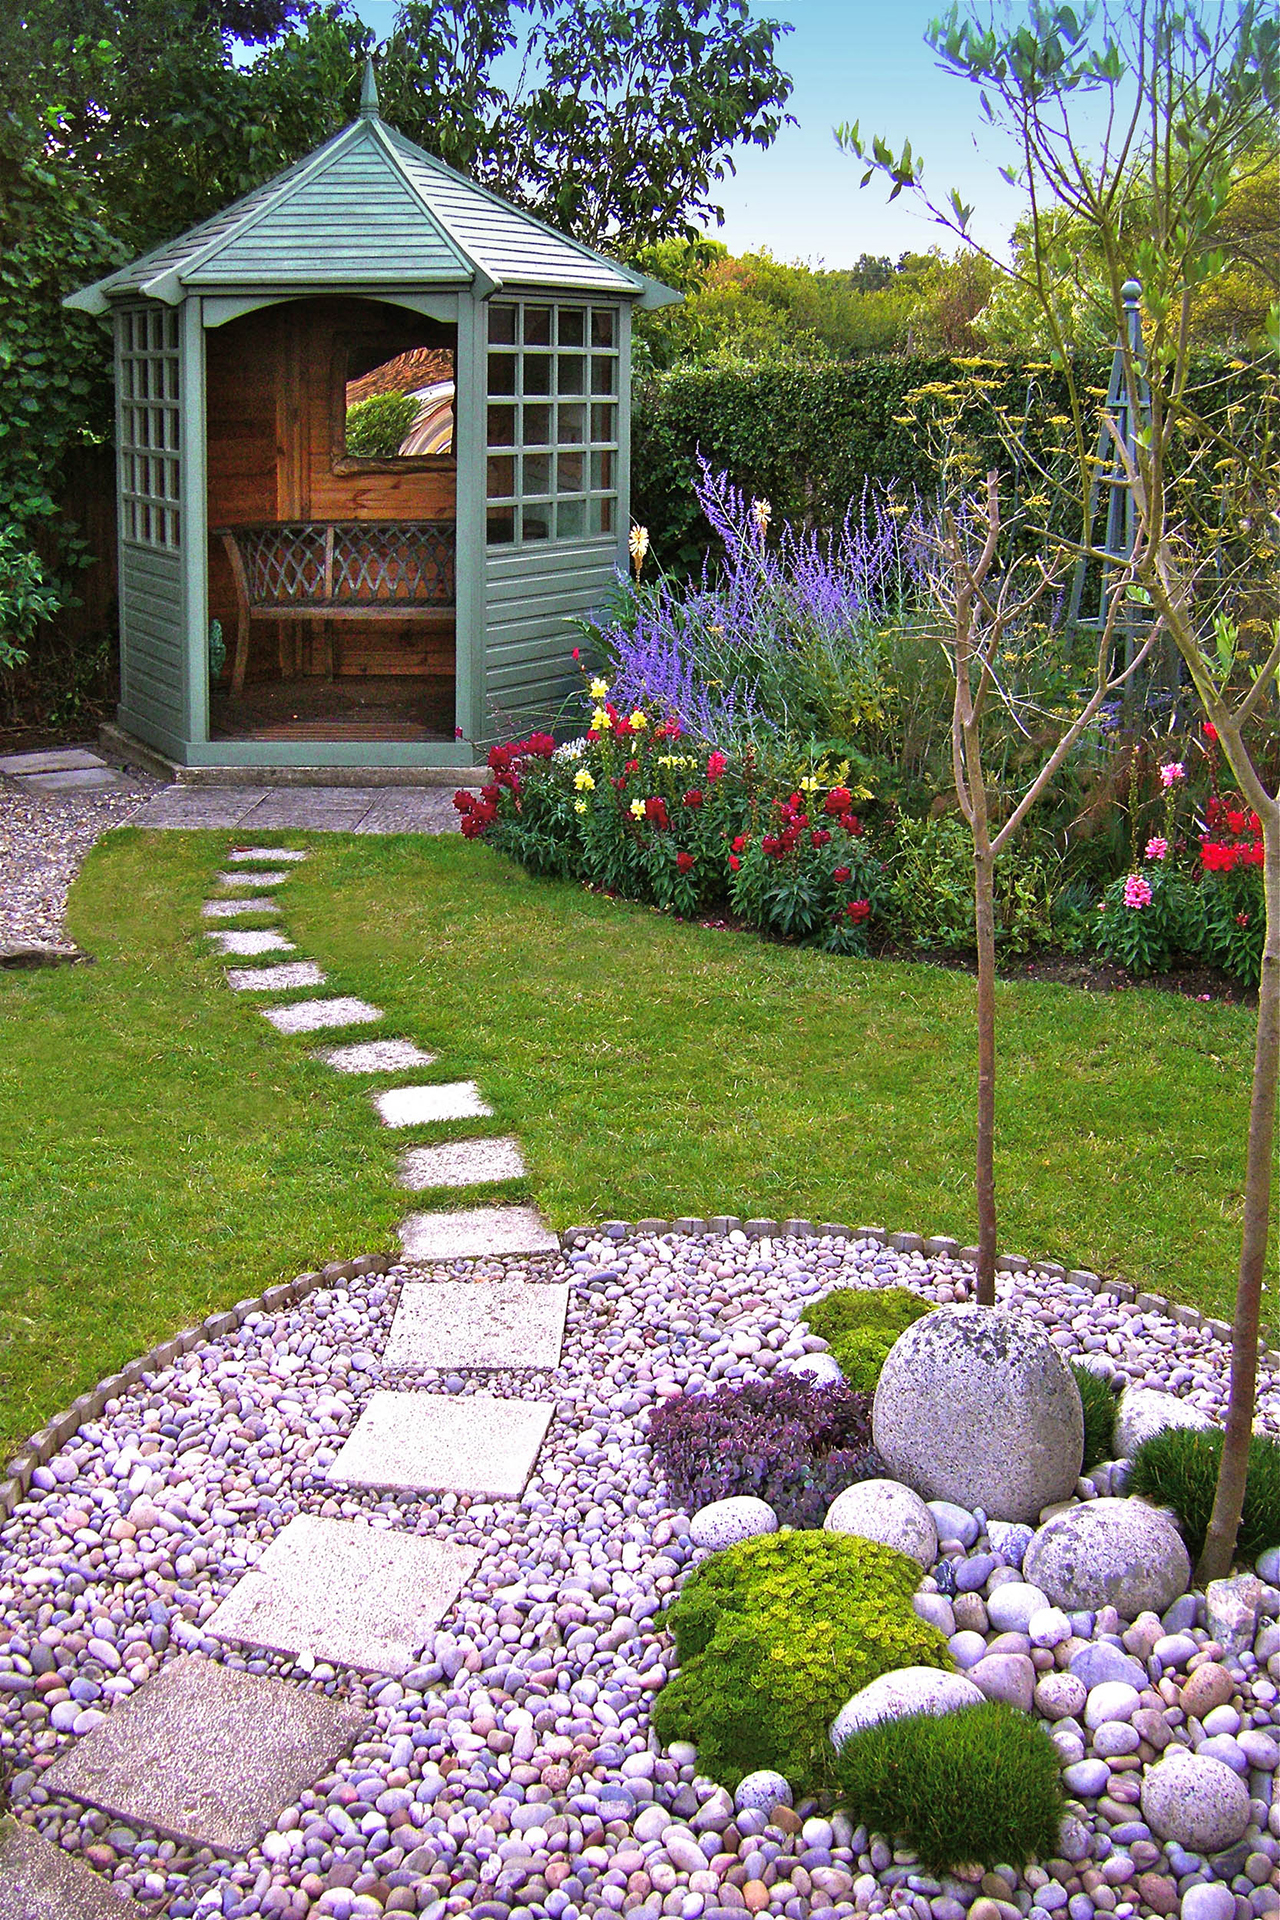 Landscaping Ideas Backyard 14. A Room of Your Own